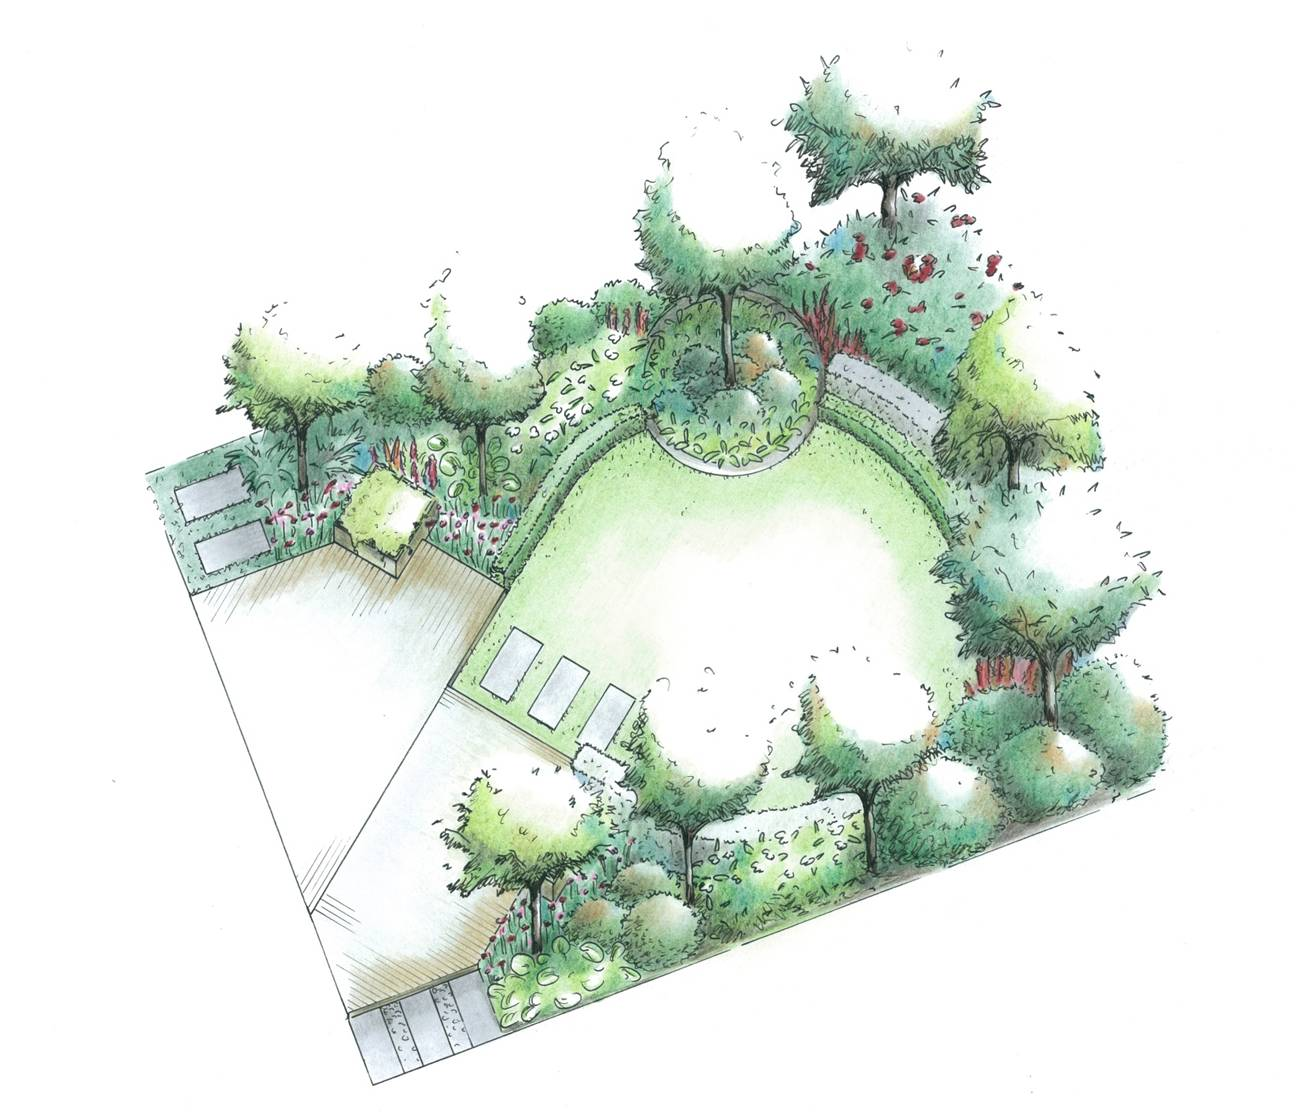 garden-plan-diagonal-theme-combined-with-circles-3d